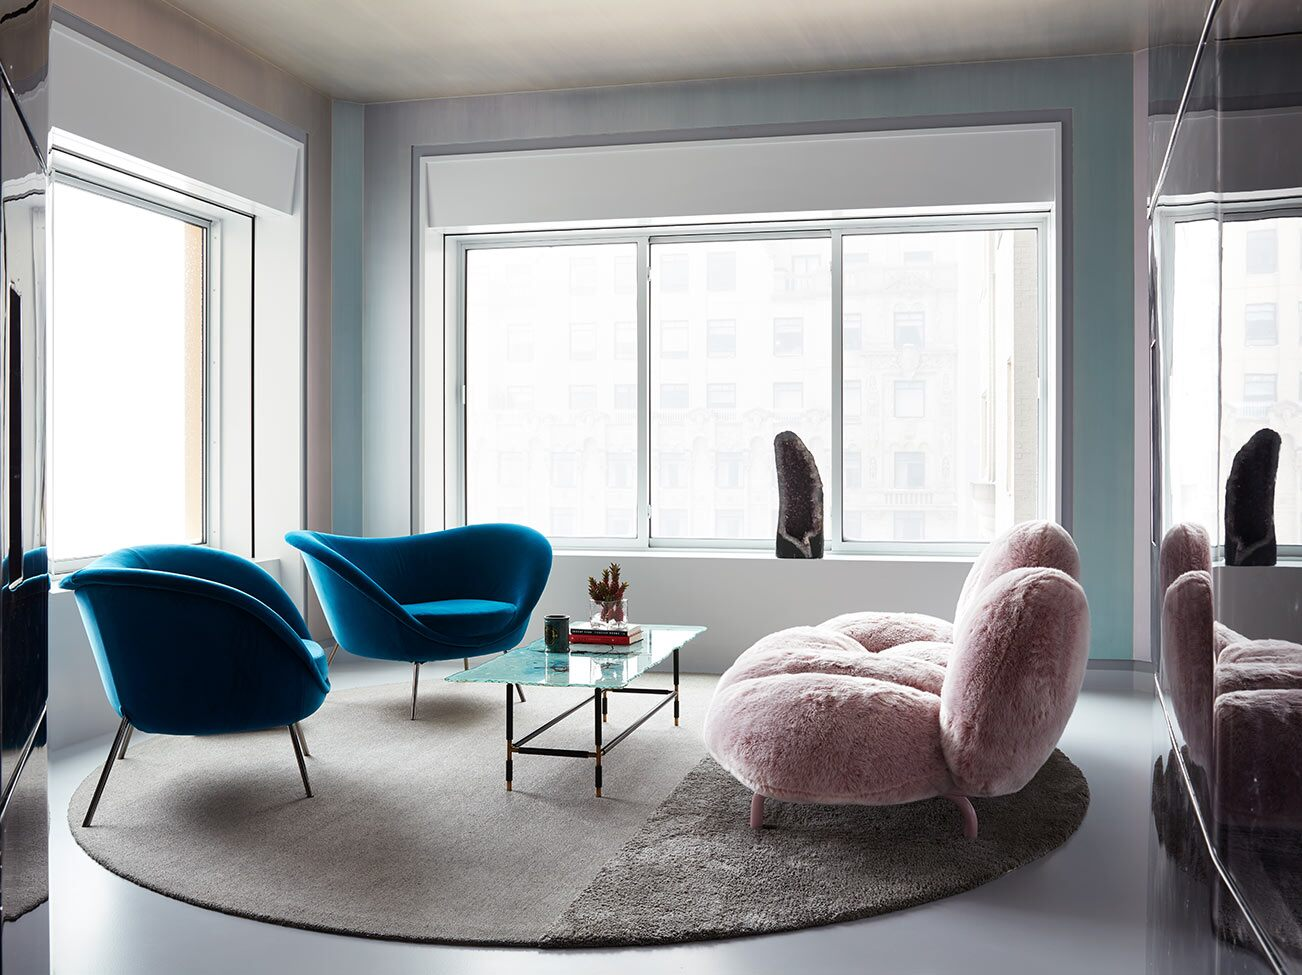 Corner sitting room with windows, light blue painted walls, contemporary furniture, natural light, and circular rug.